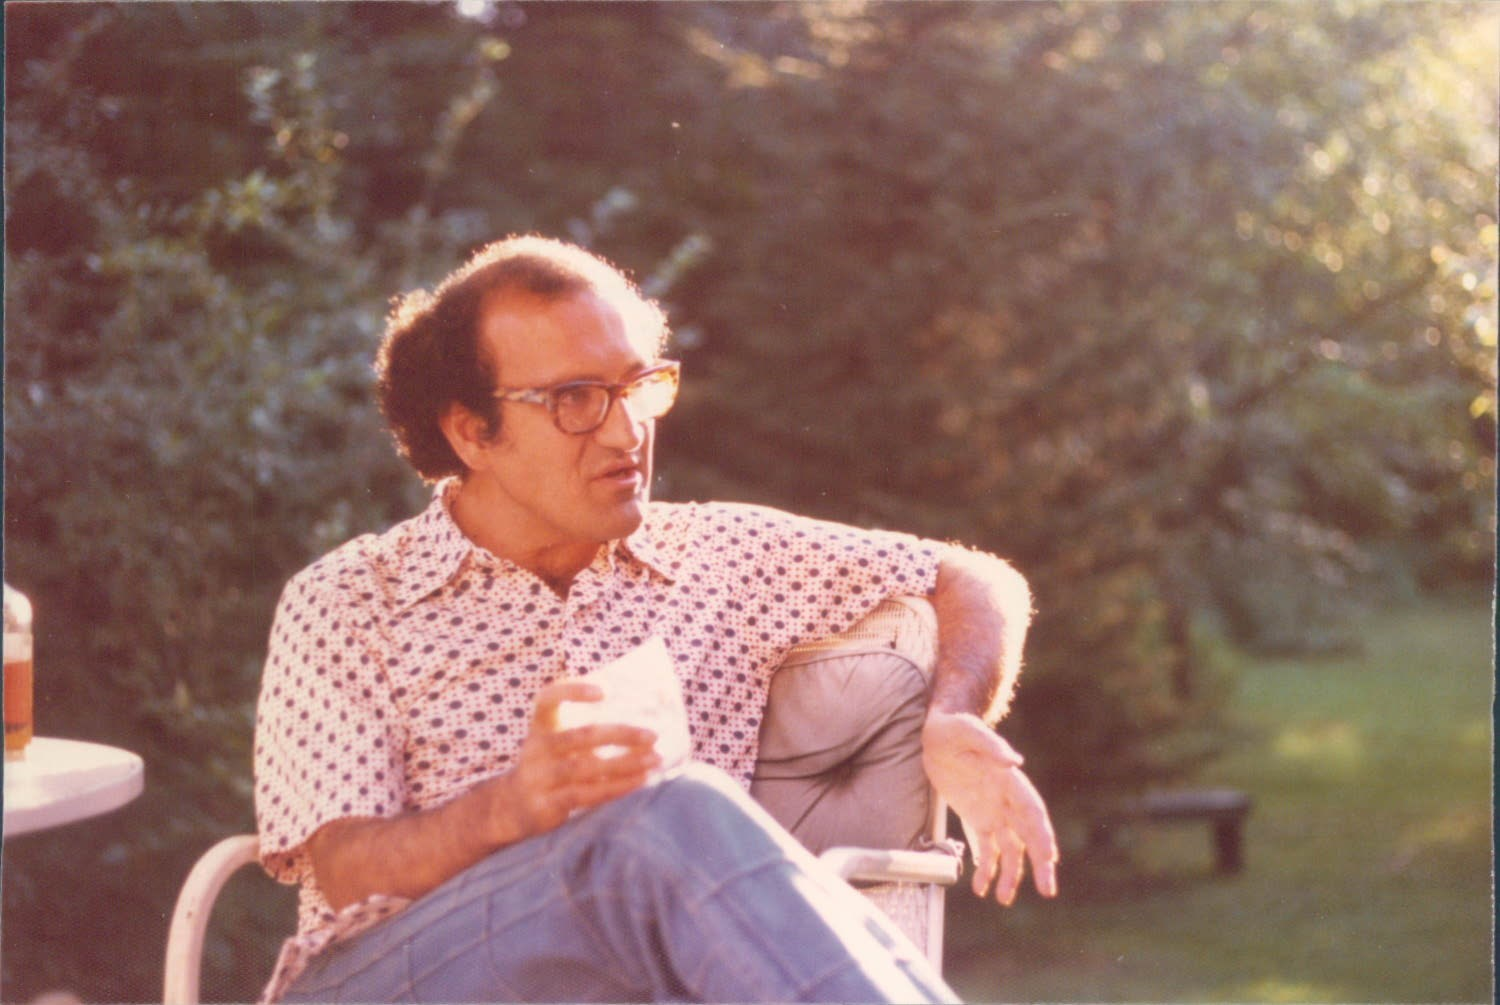 Reza, Weston, Massachusetts, 1973